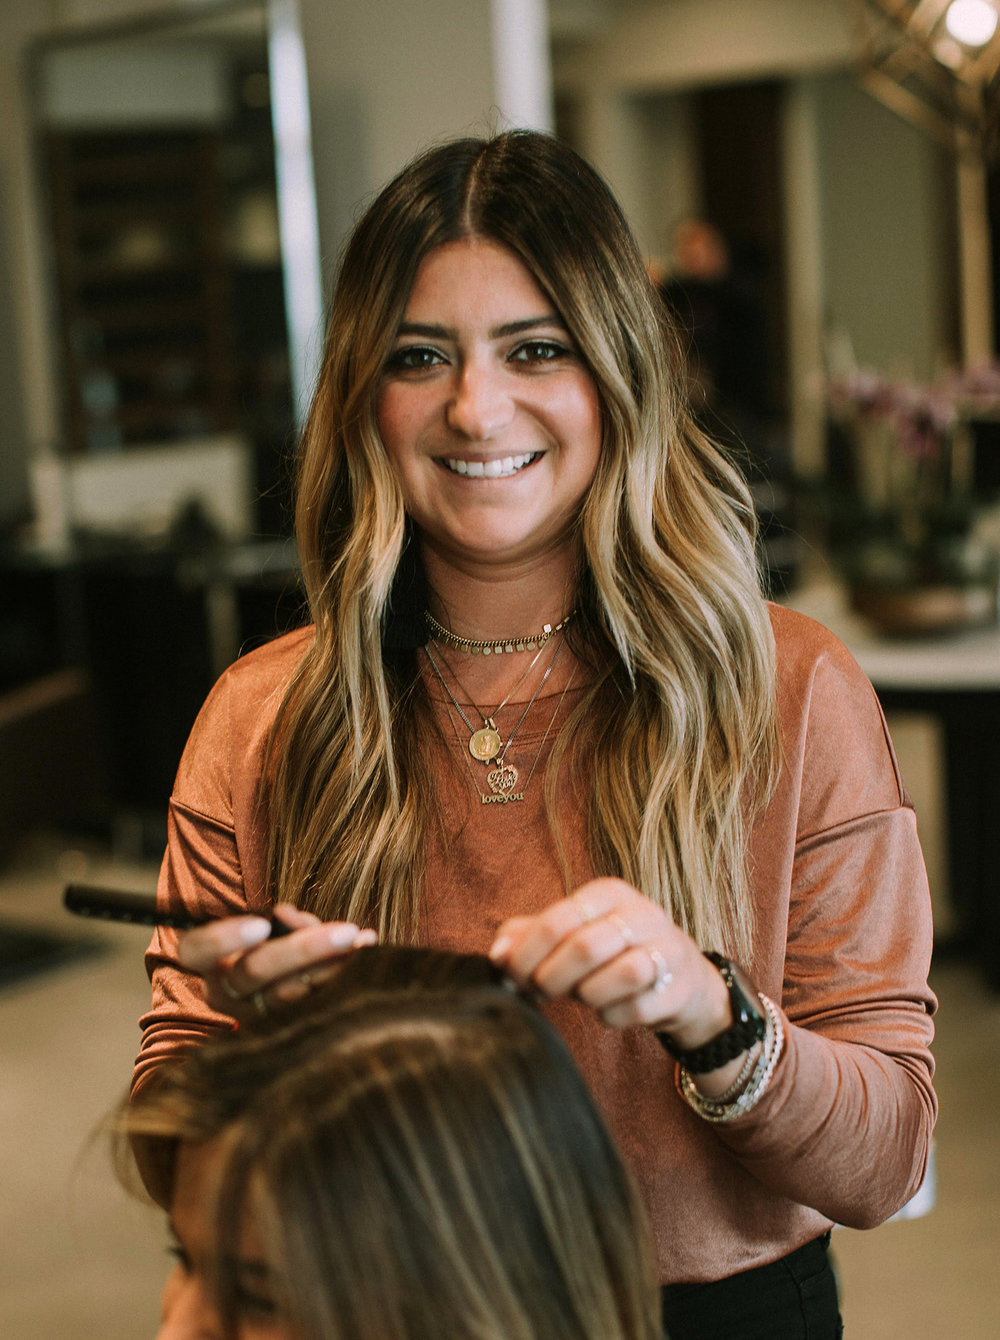 Natalie Salvo / Hair colorist